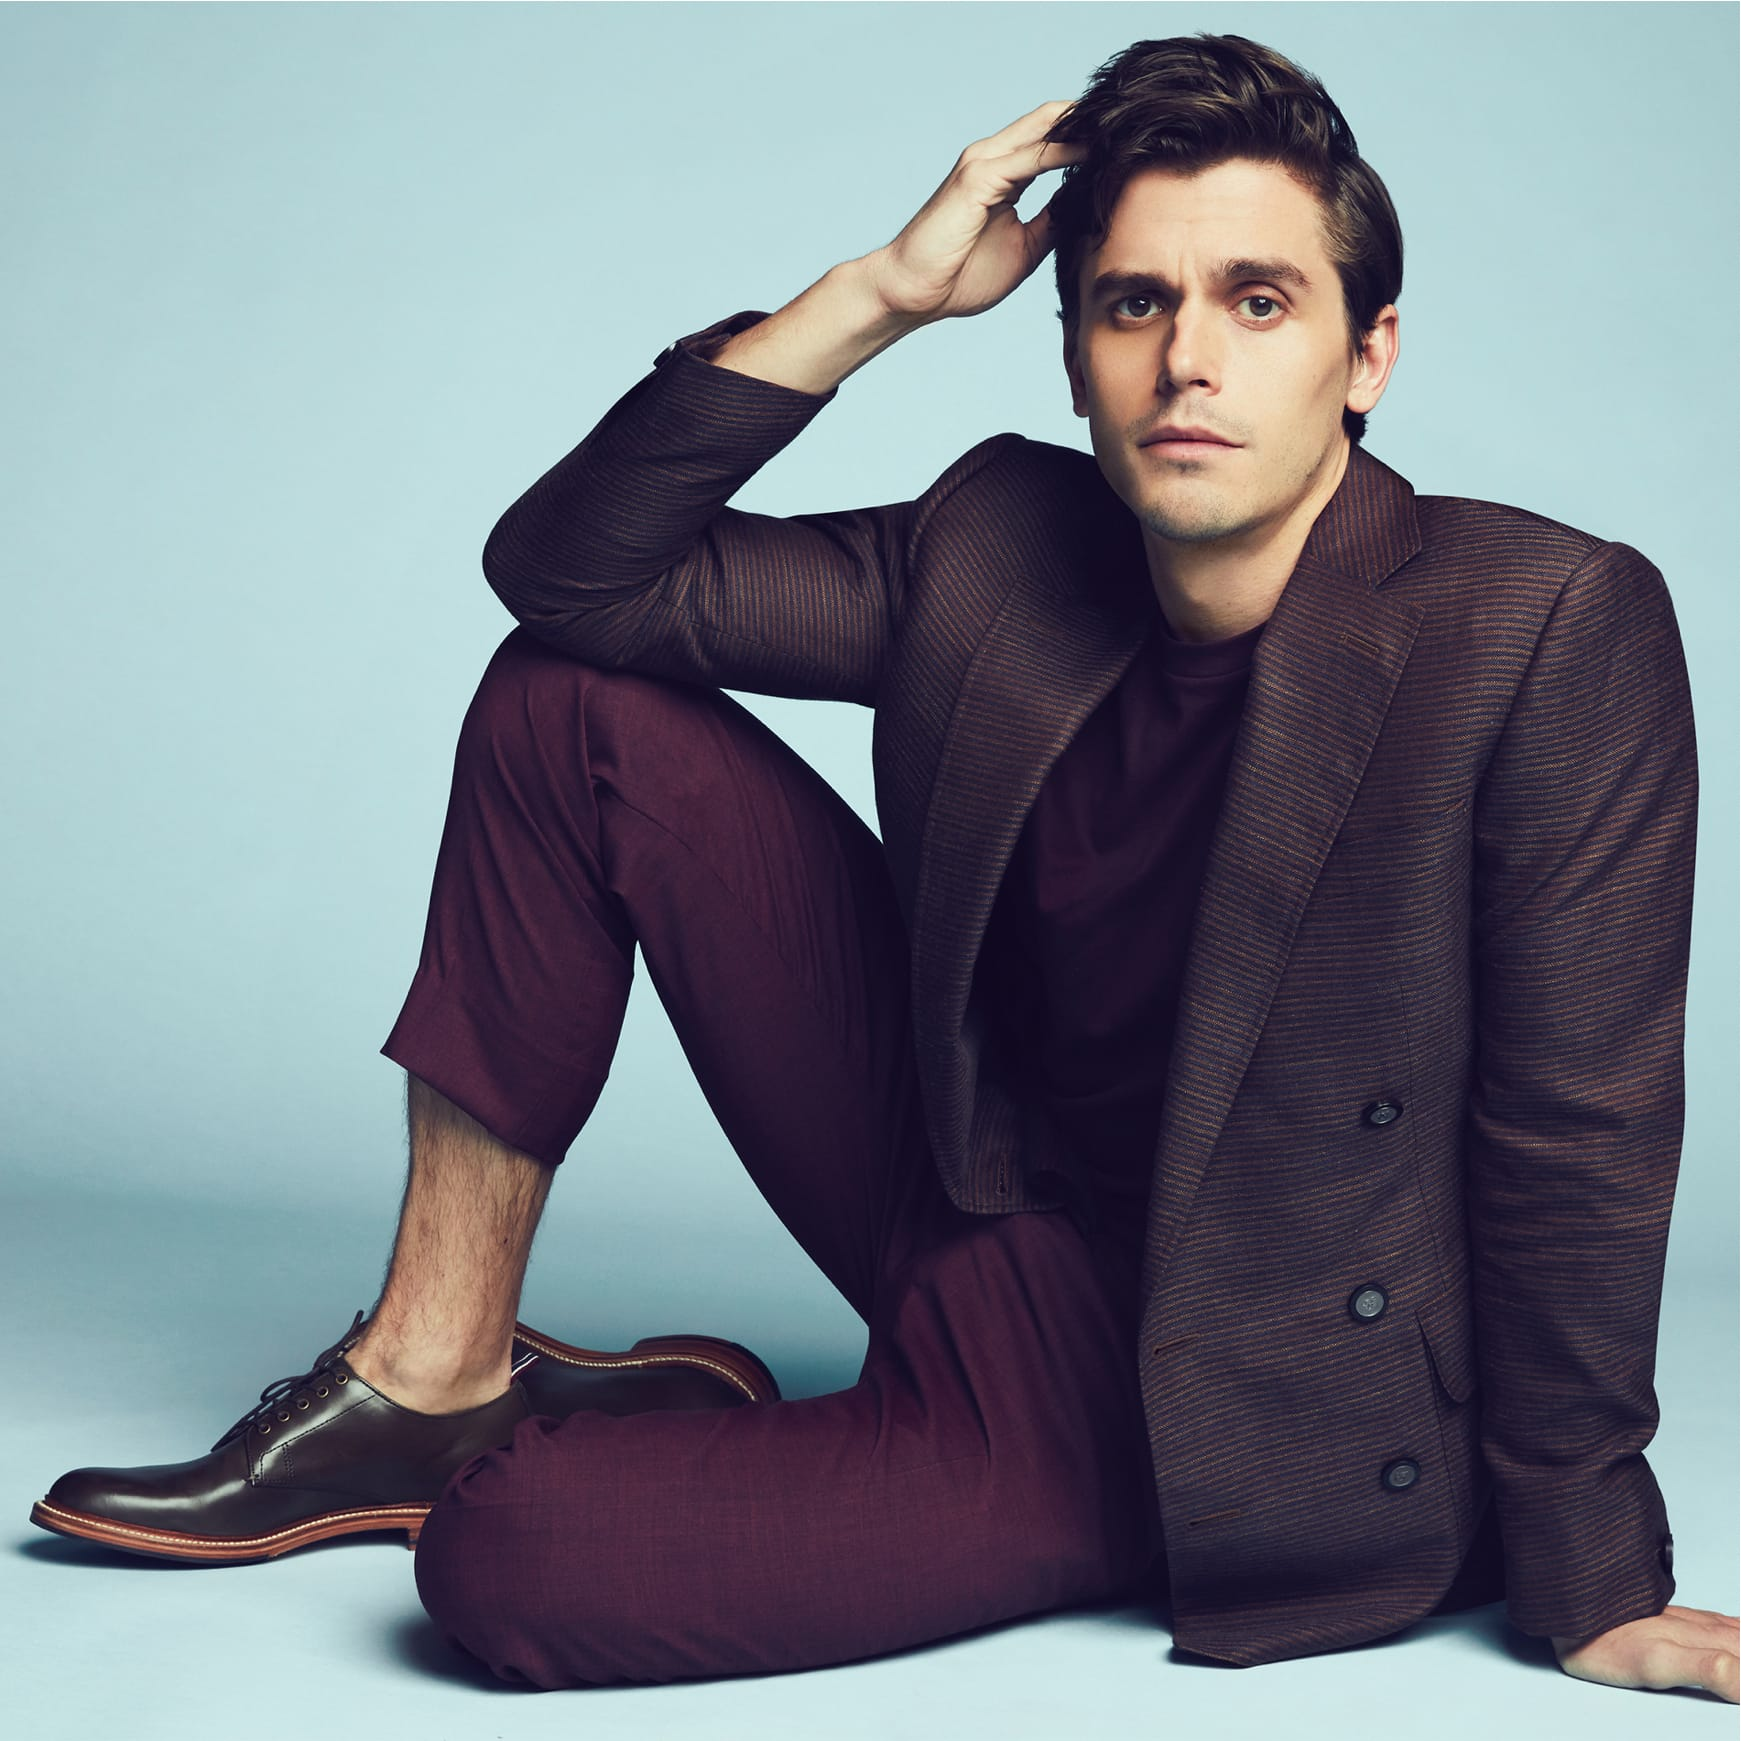 Antoni Porowski (food and wine expert)